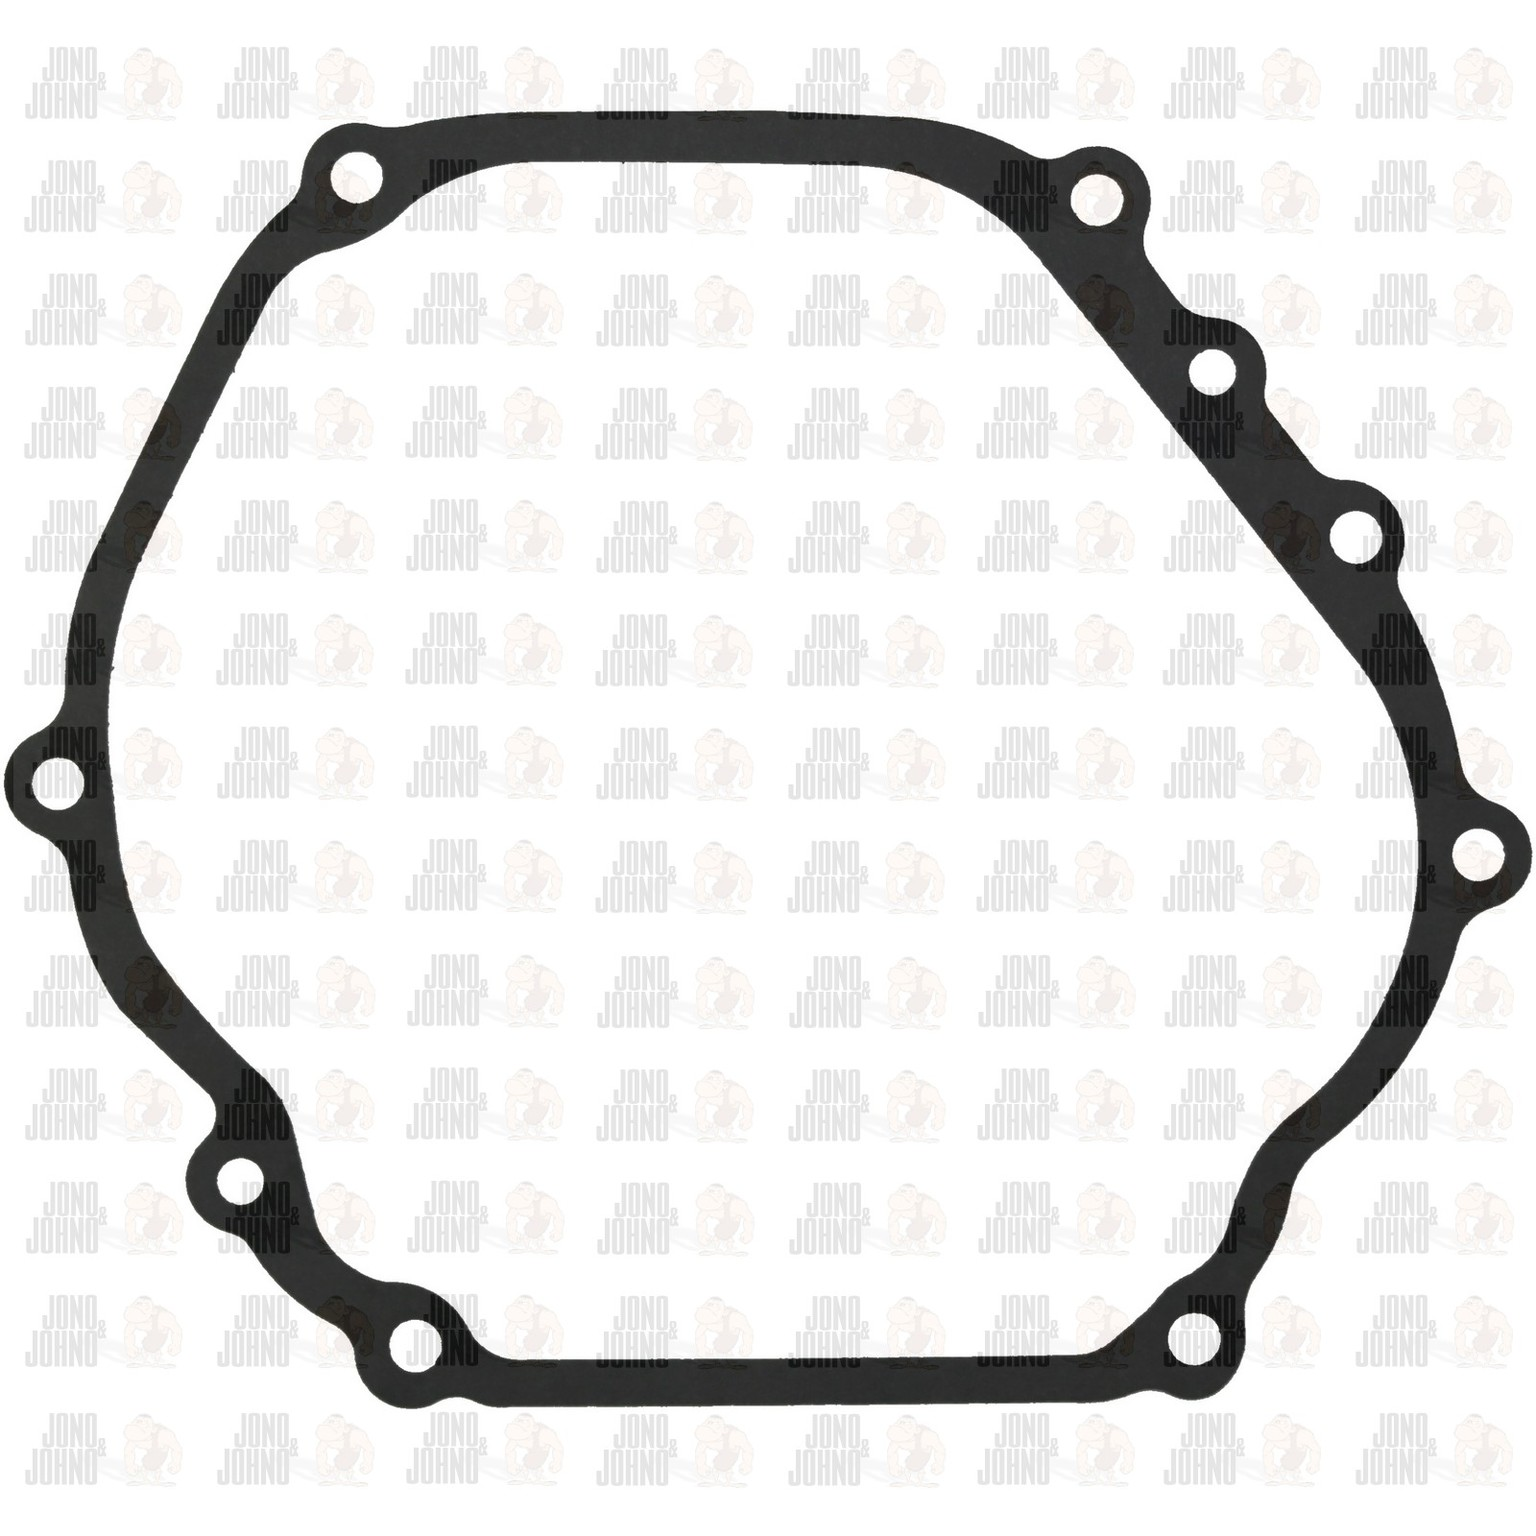 Side Cover Gasket for Honda GX340 GX390 Engines 11381-ZE3